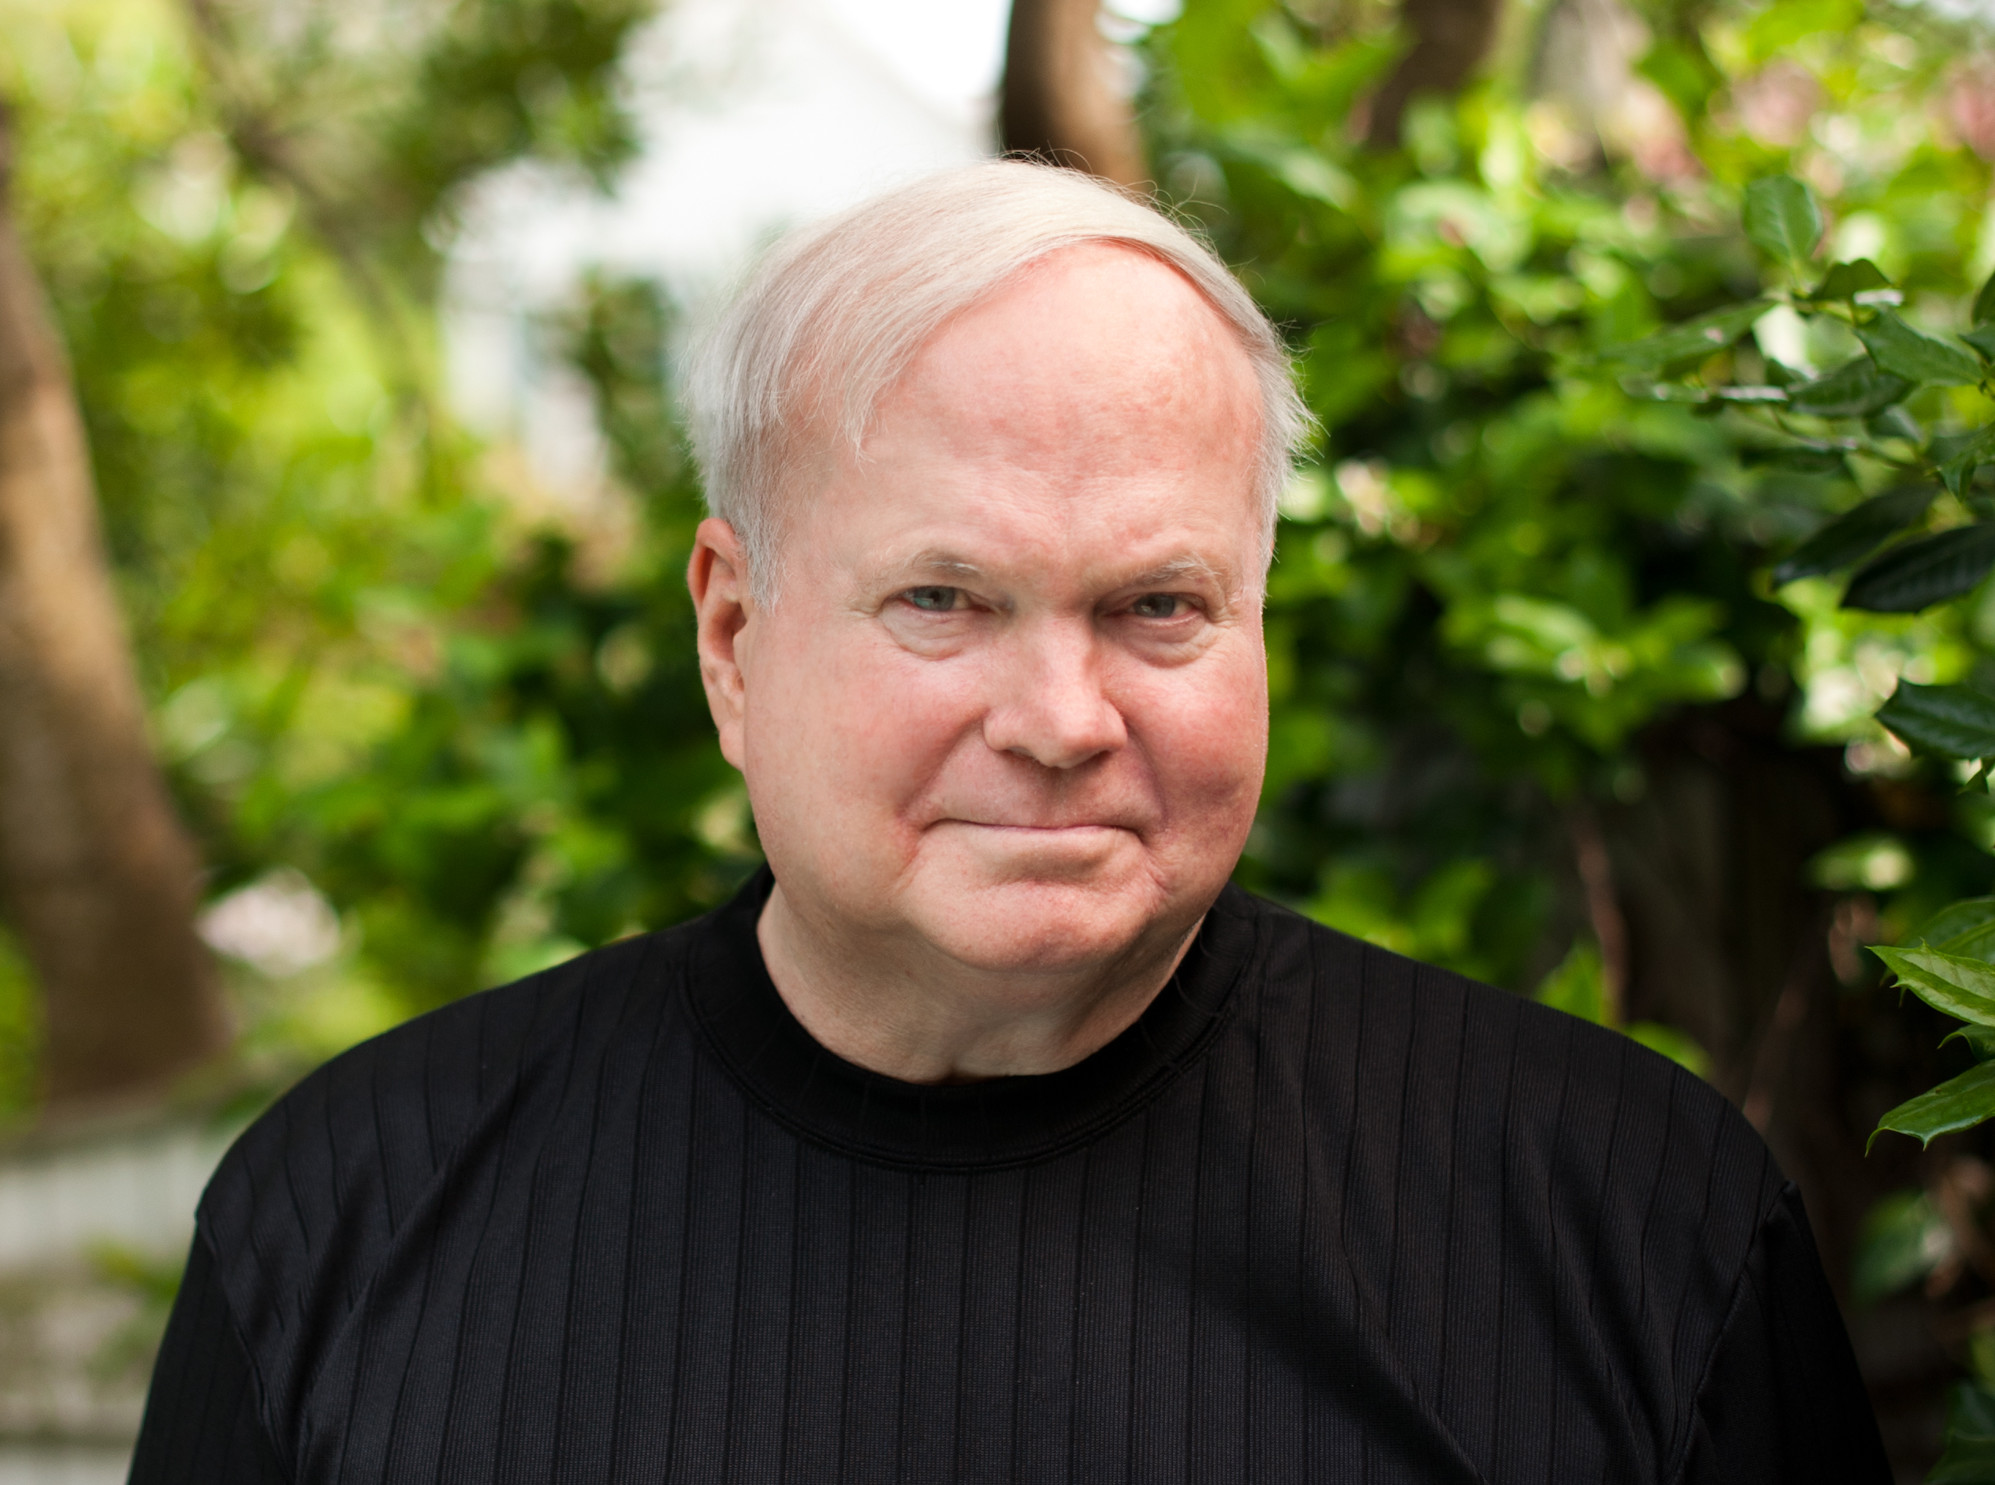 Pat Conroy Reverence for Teaching